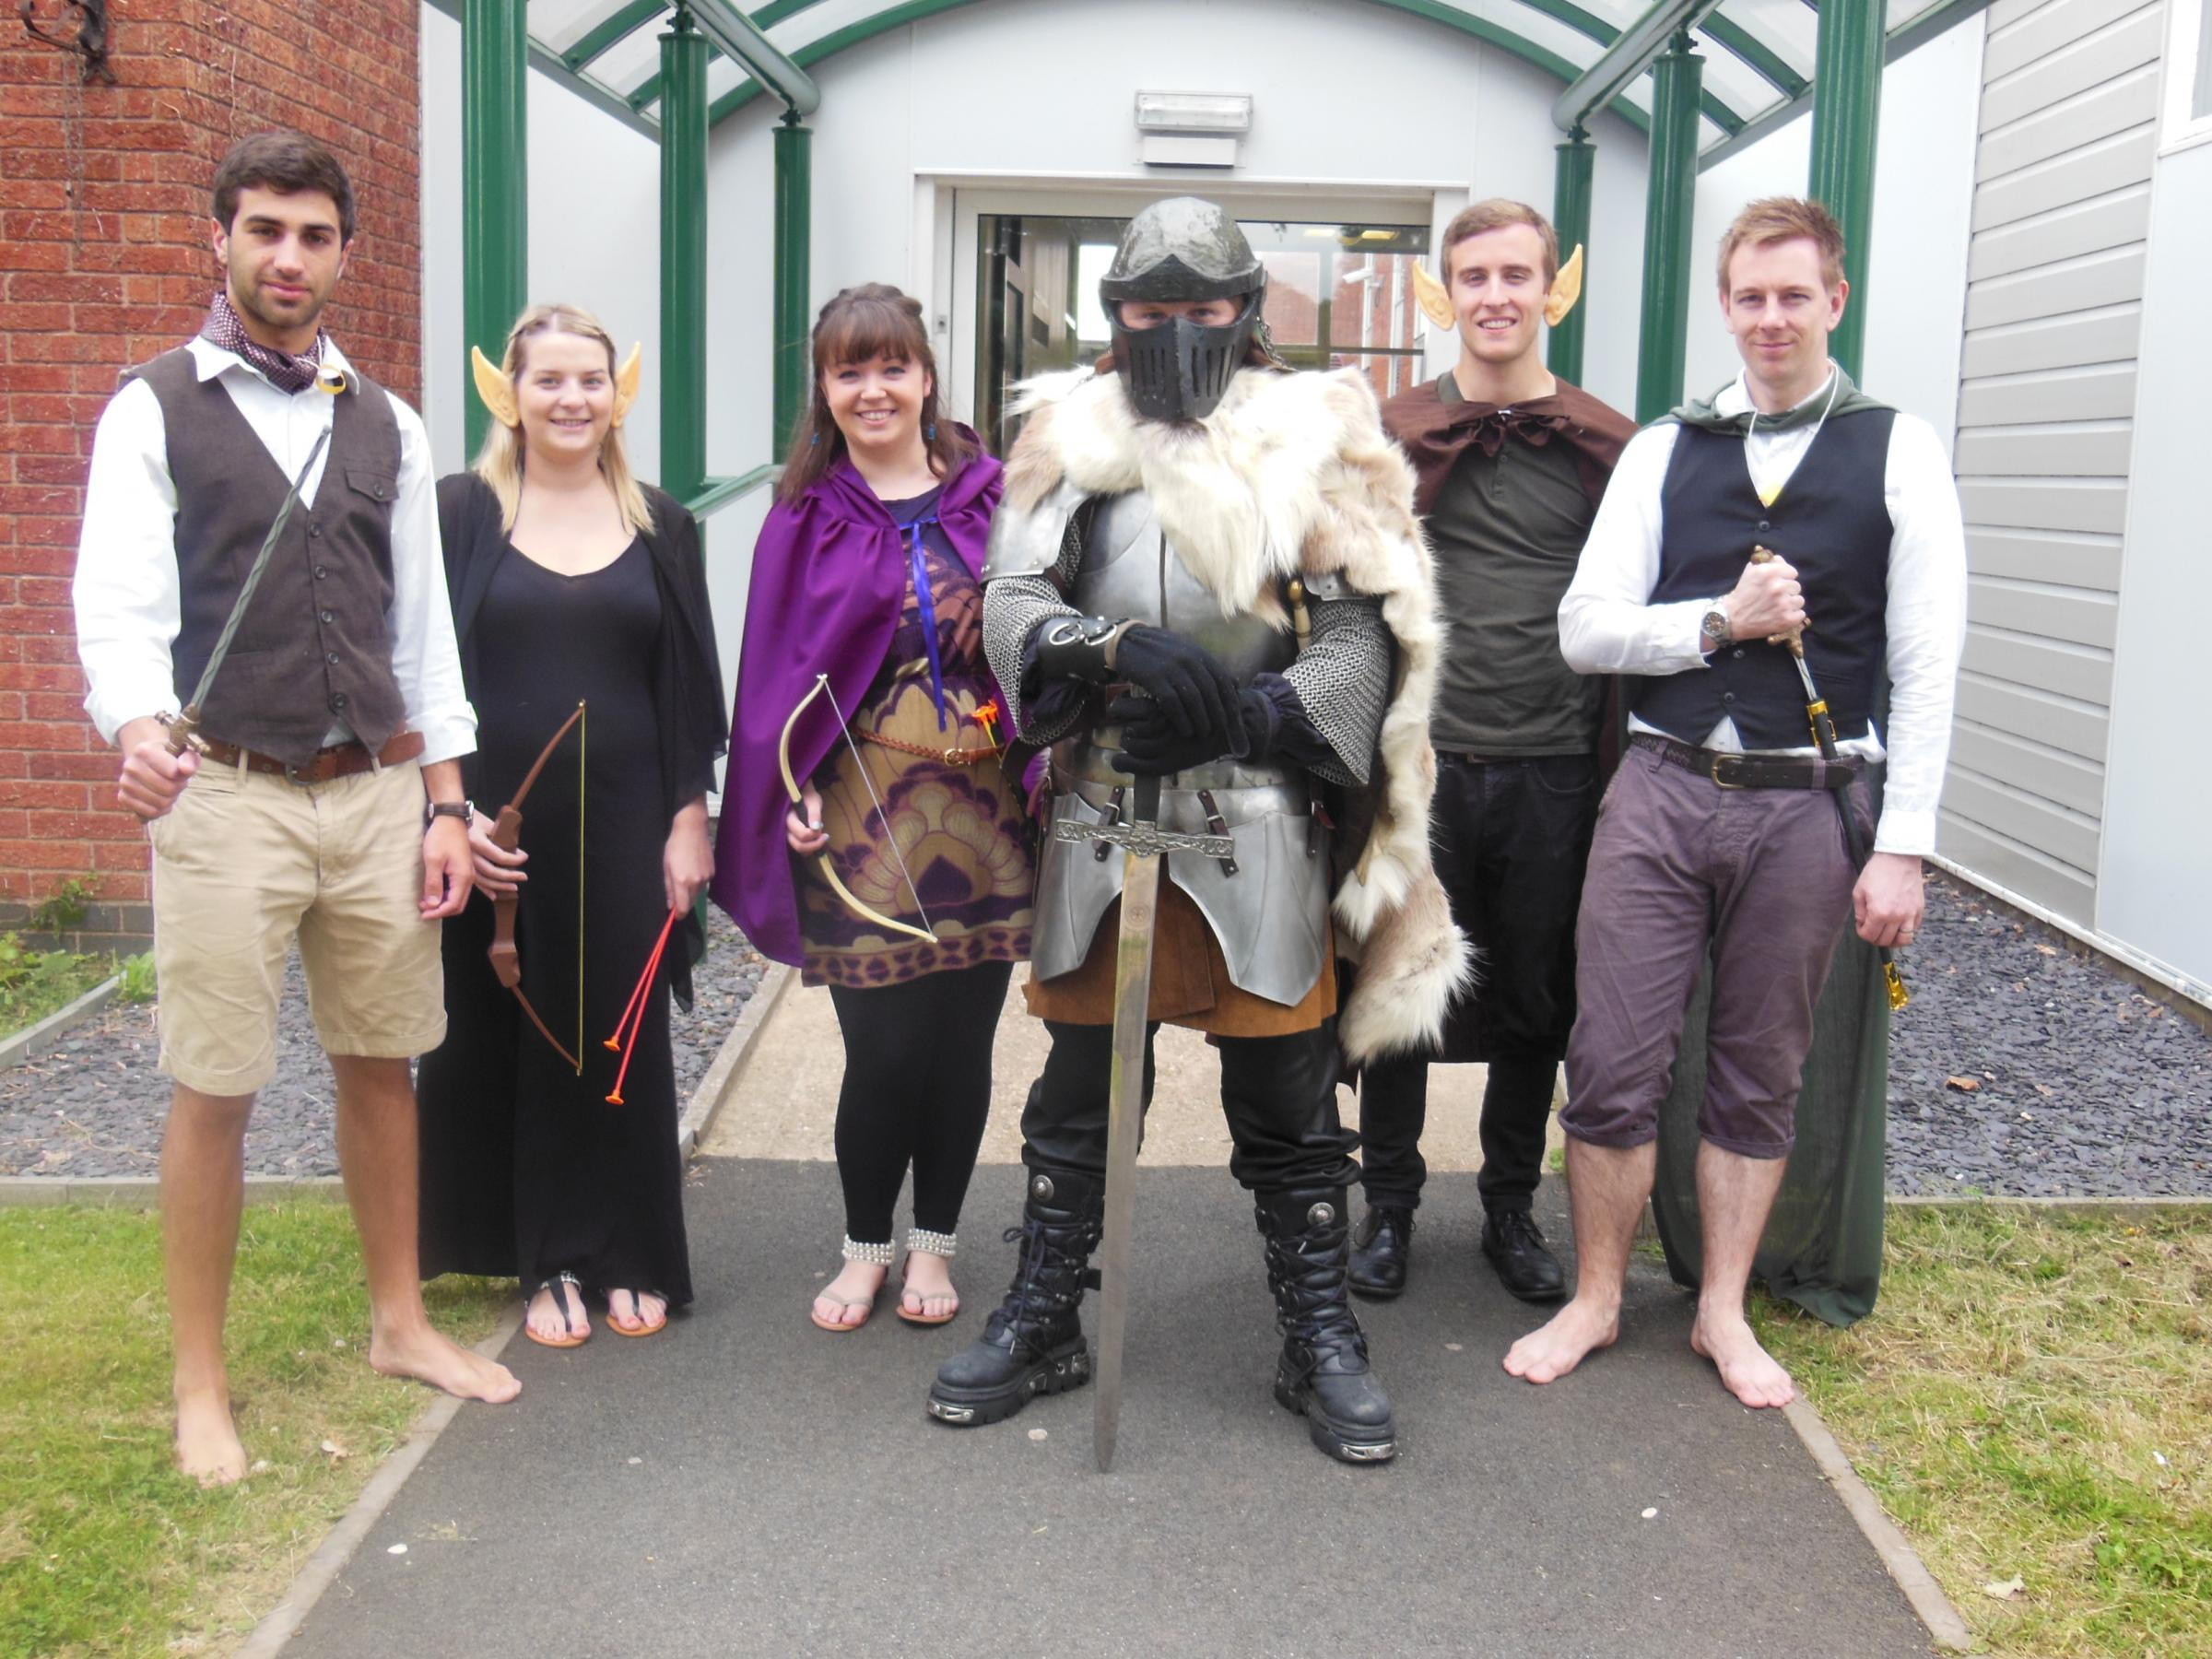 The magic of Tolkien was brought to life by staff at Tudor Grange Academy. SP